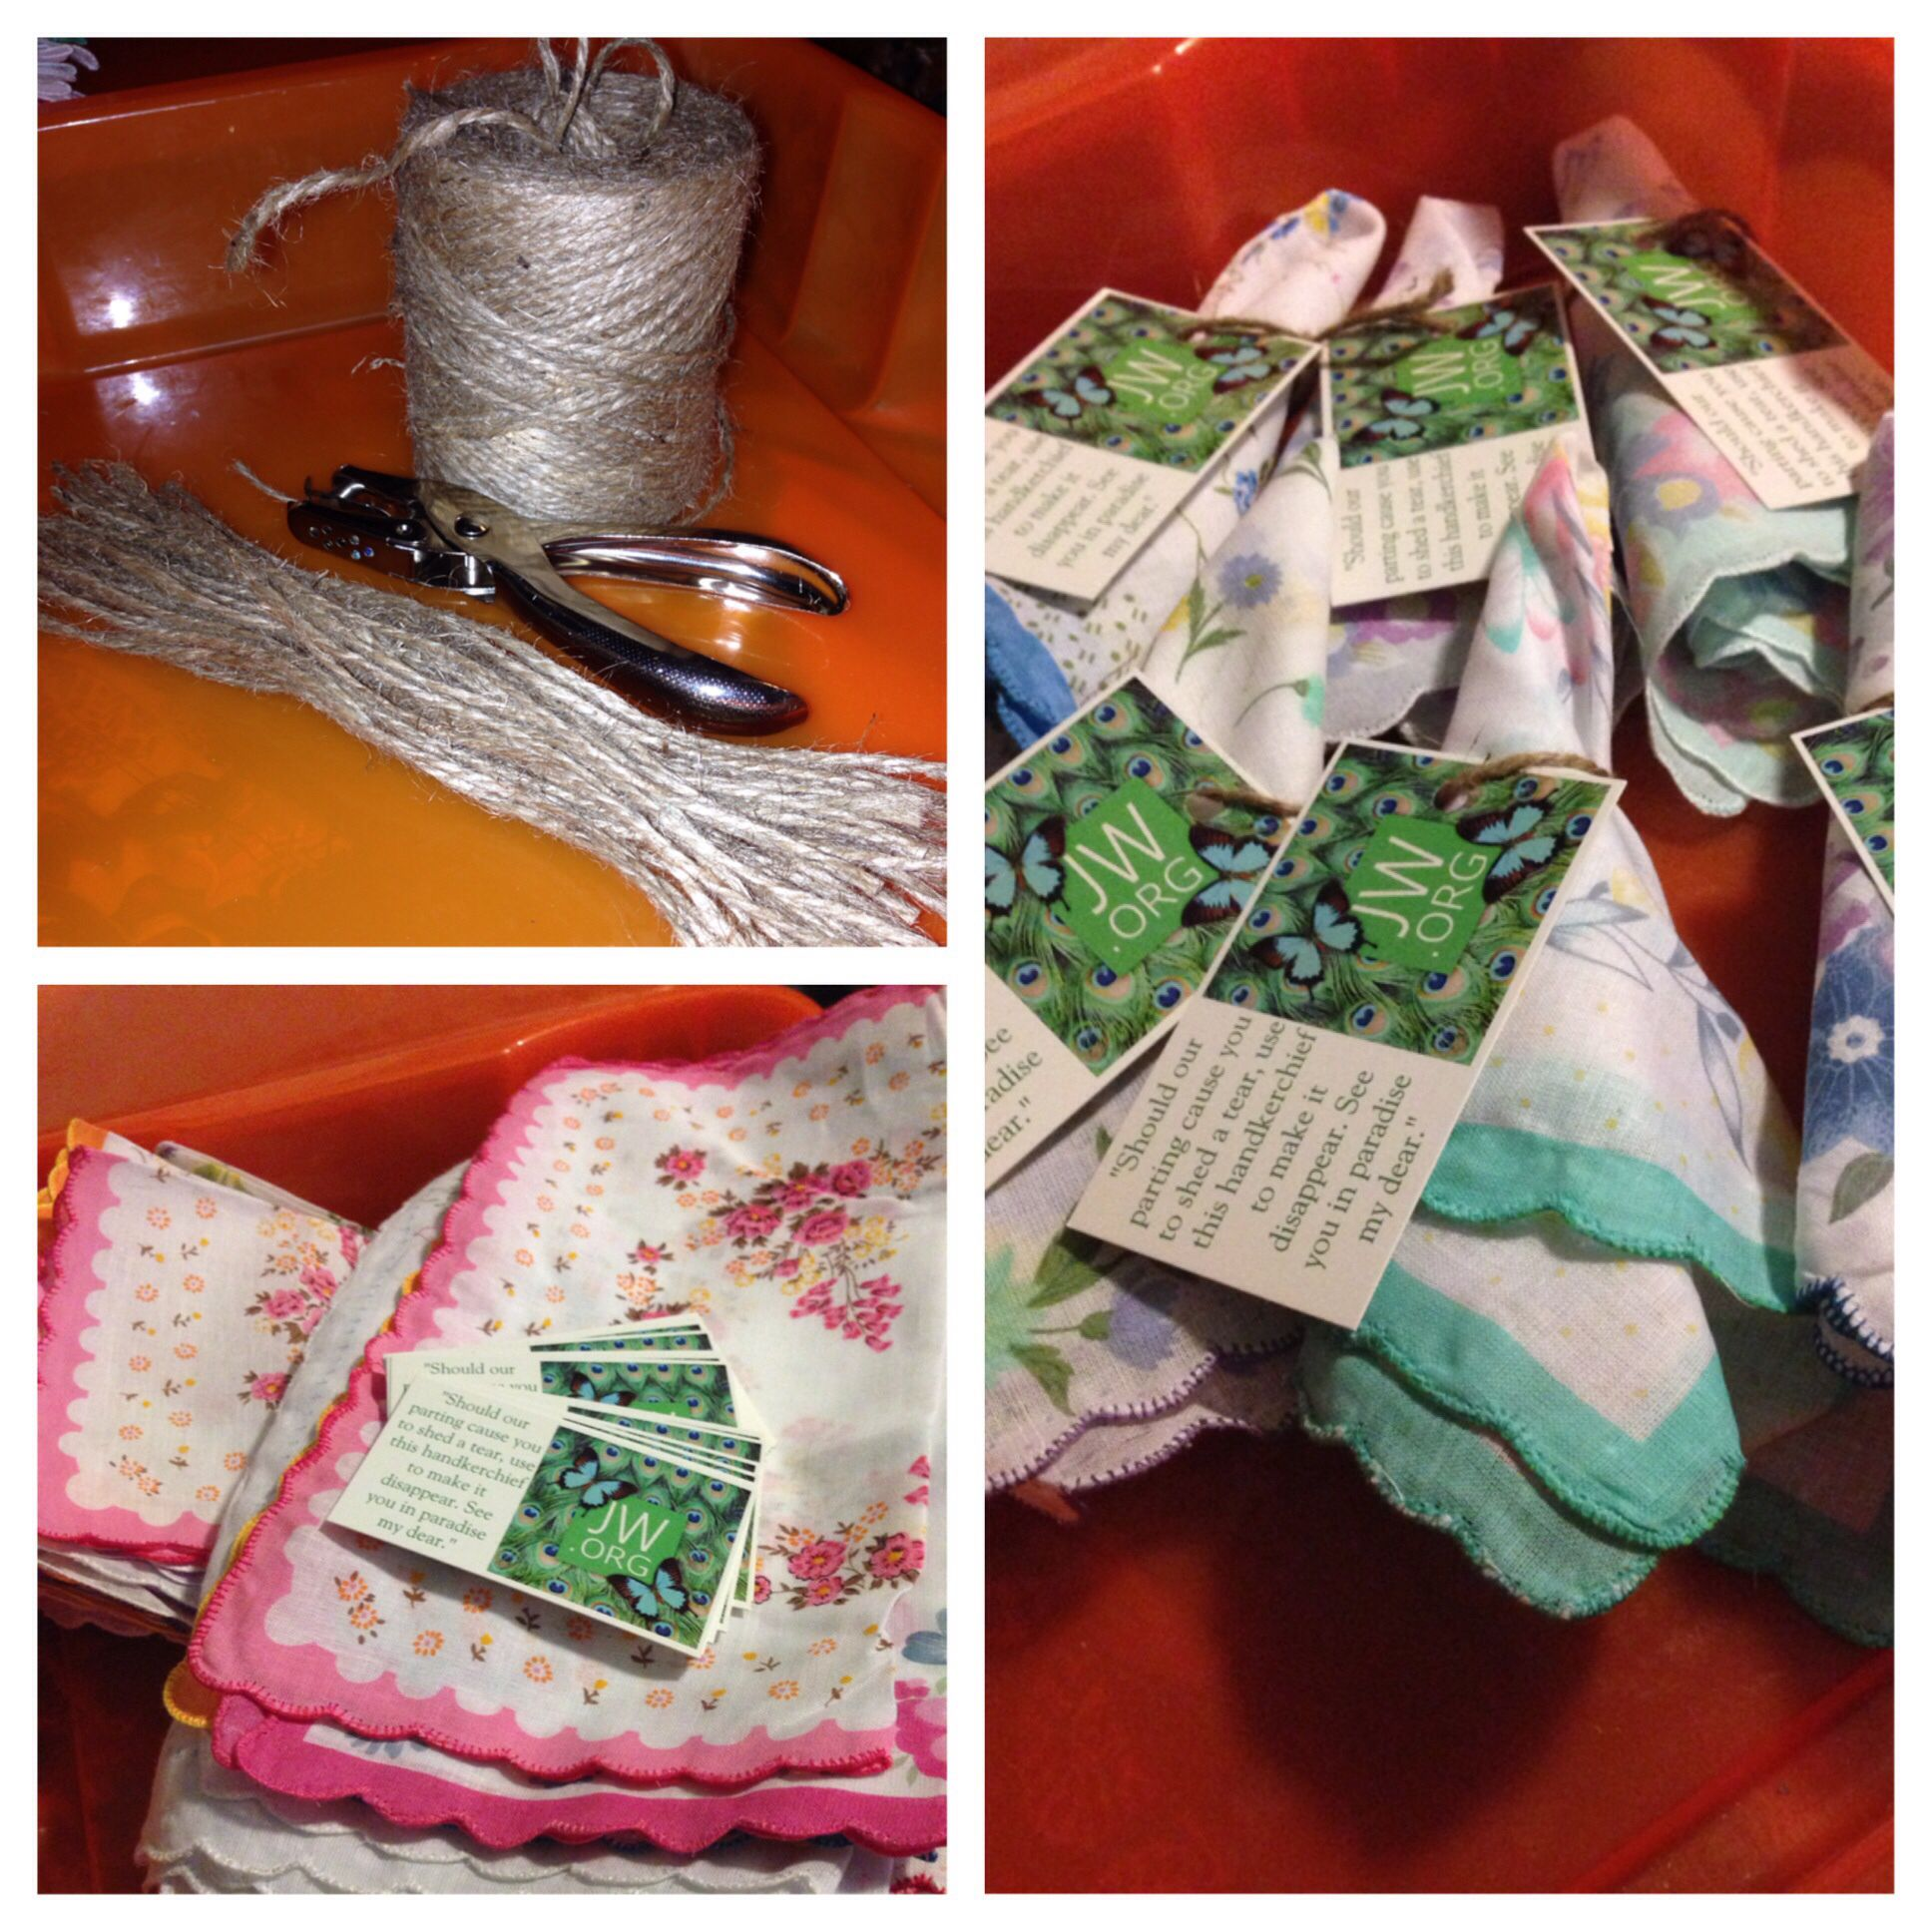 Wedding Witness Gifts: Love What This Sister Has Done What A Beautiful Idea